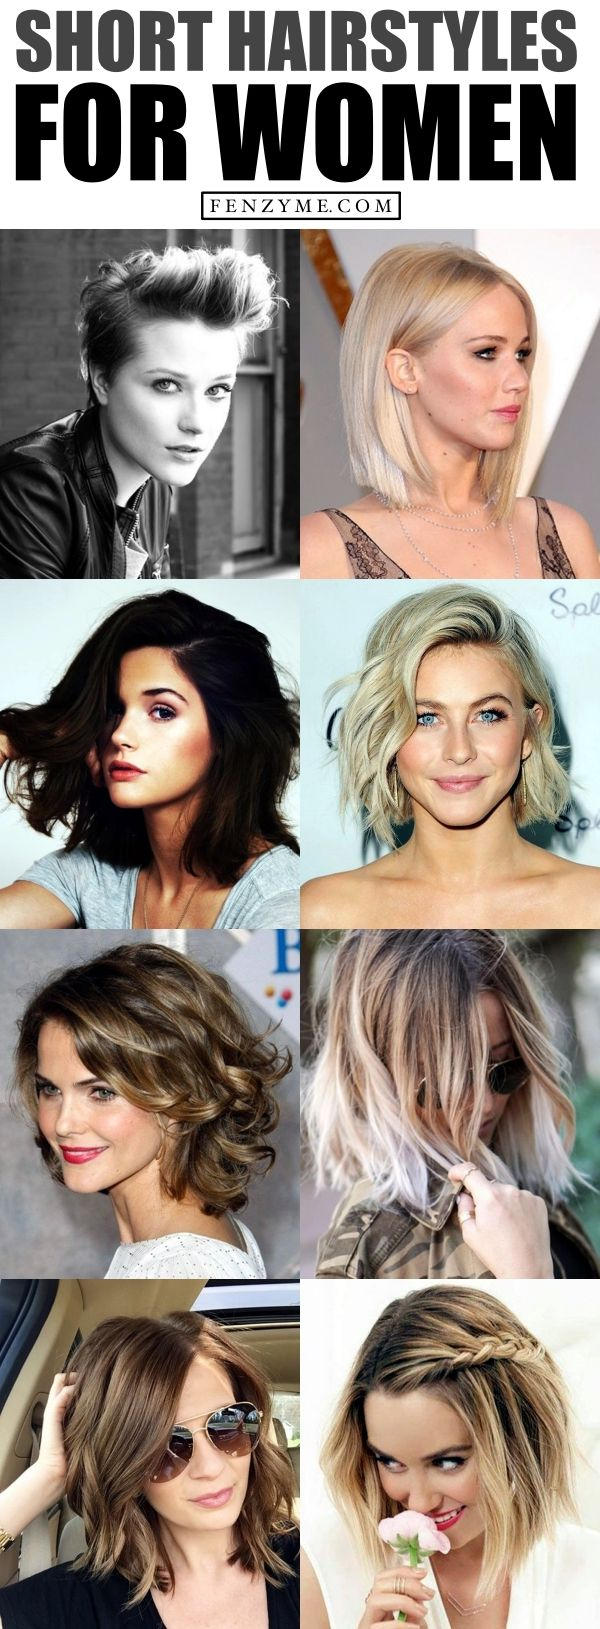 50 Extra-Chic Short Hairstyles For Women in 2017